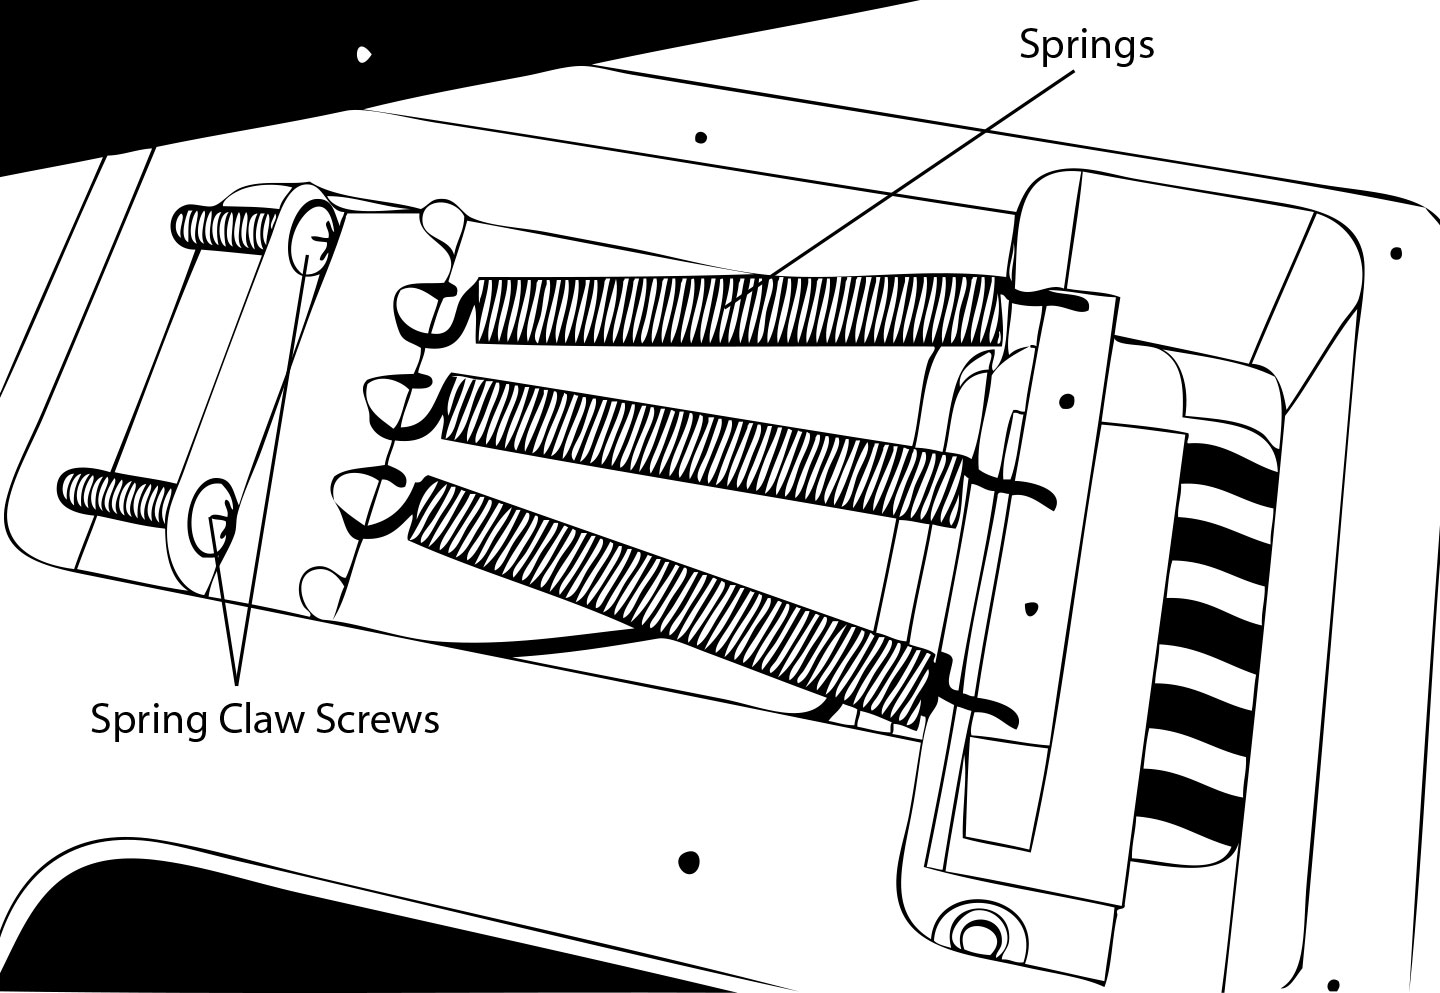 Caparison Tremeolo Spring Assembly Diagram